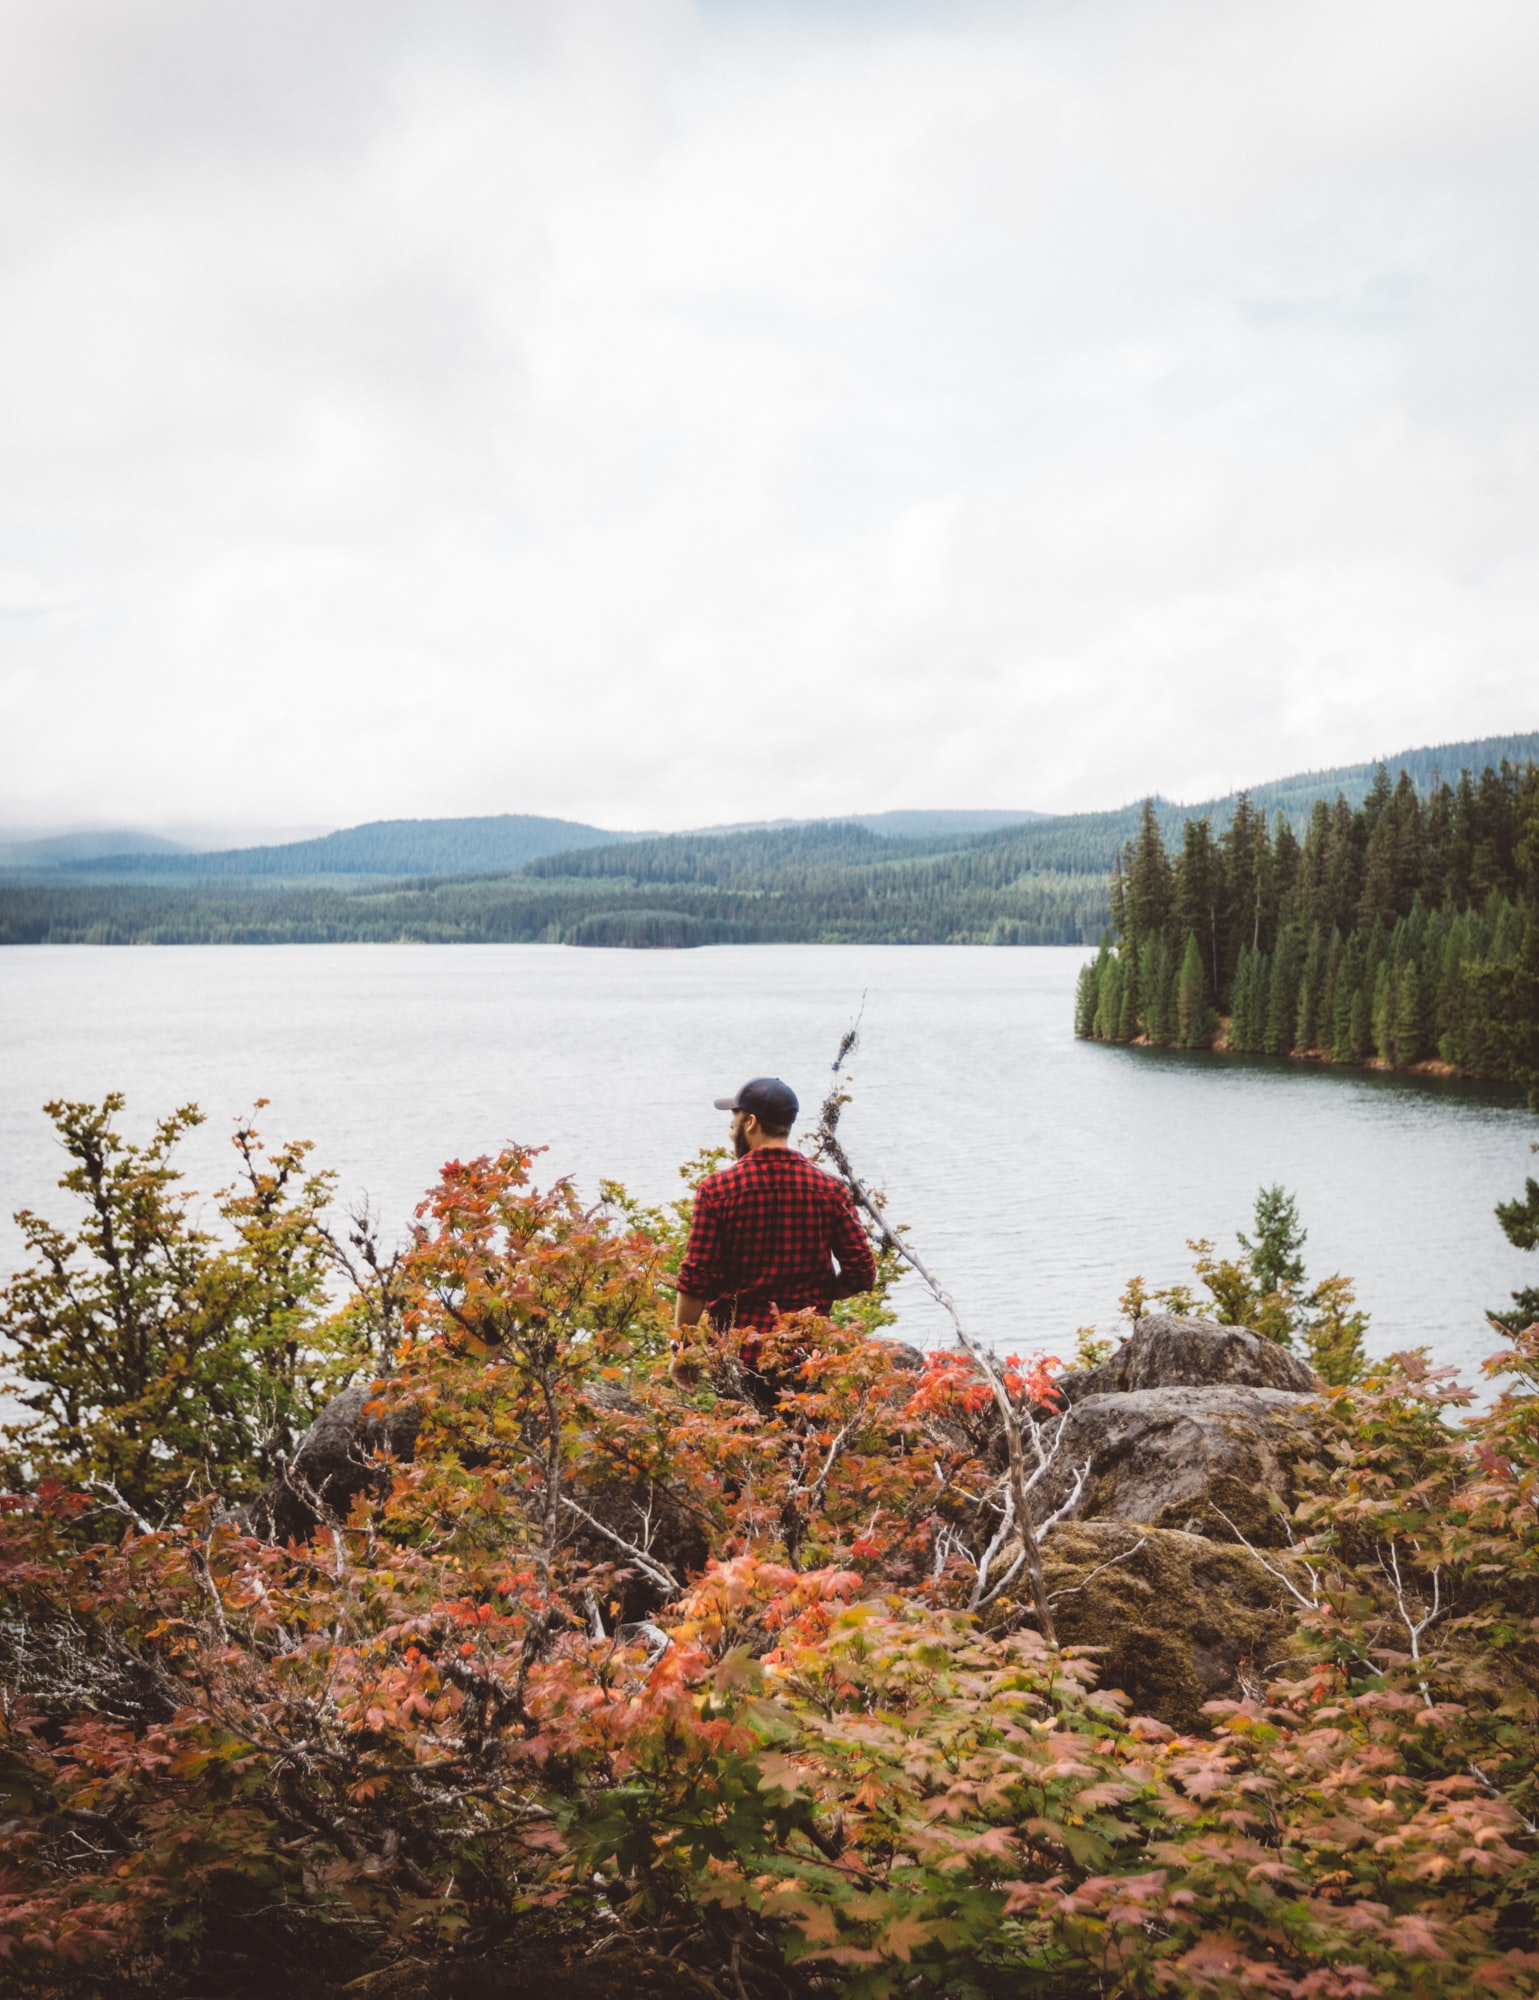 person in flannel dress shirt staring on body of water during daytime